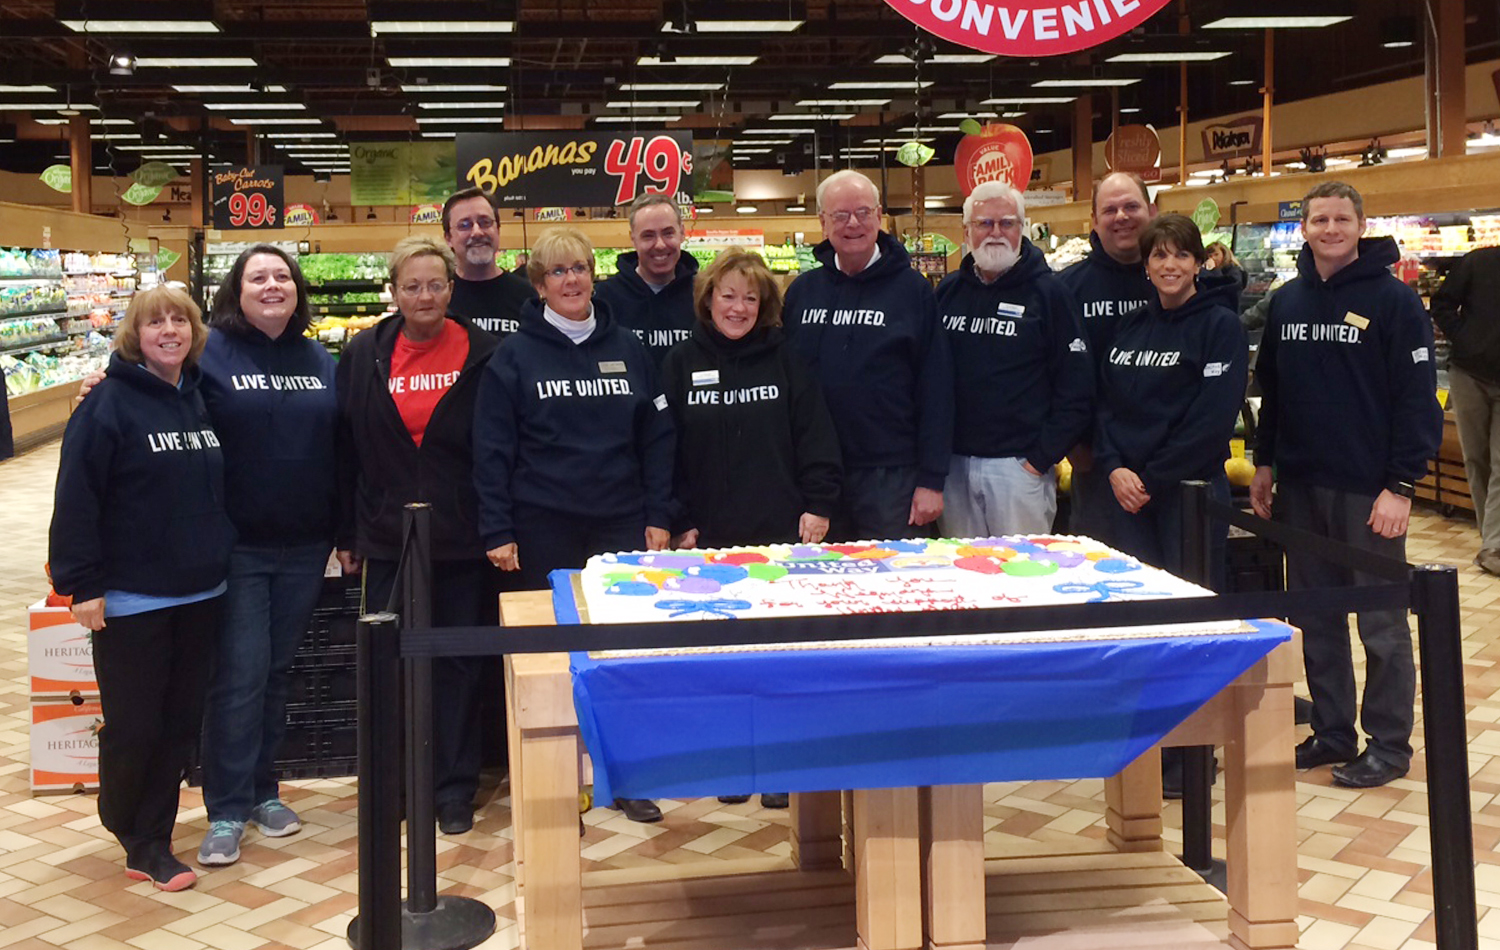 United Way of Livingston County Kicks Off 2015 Campaign with Wegmans